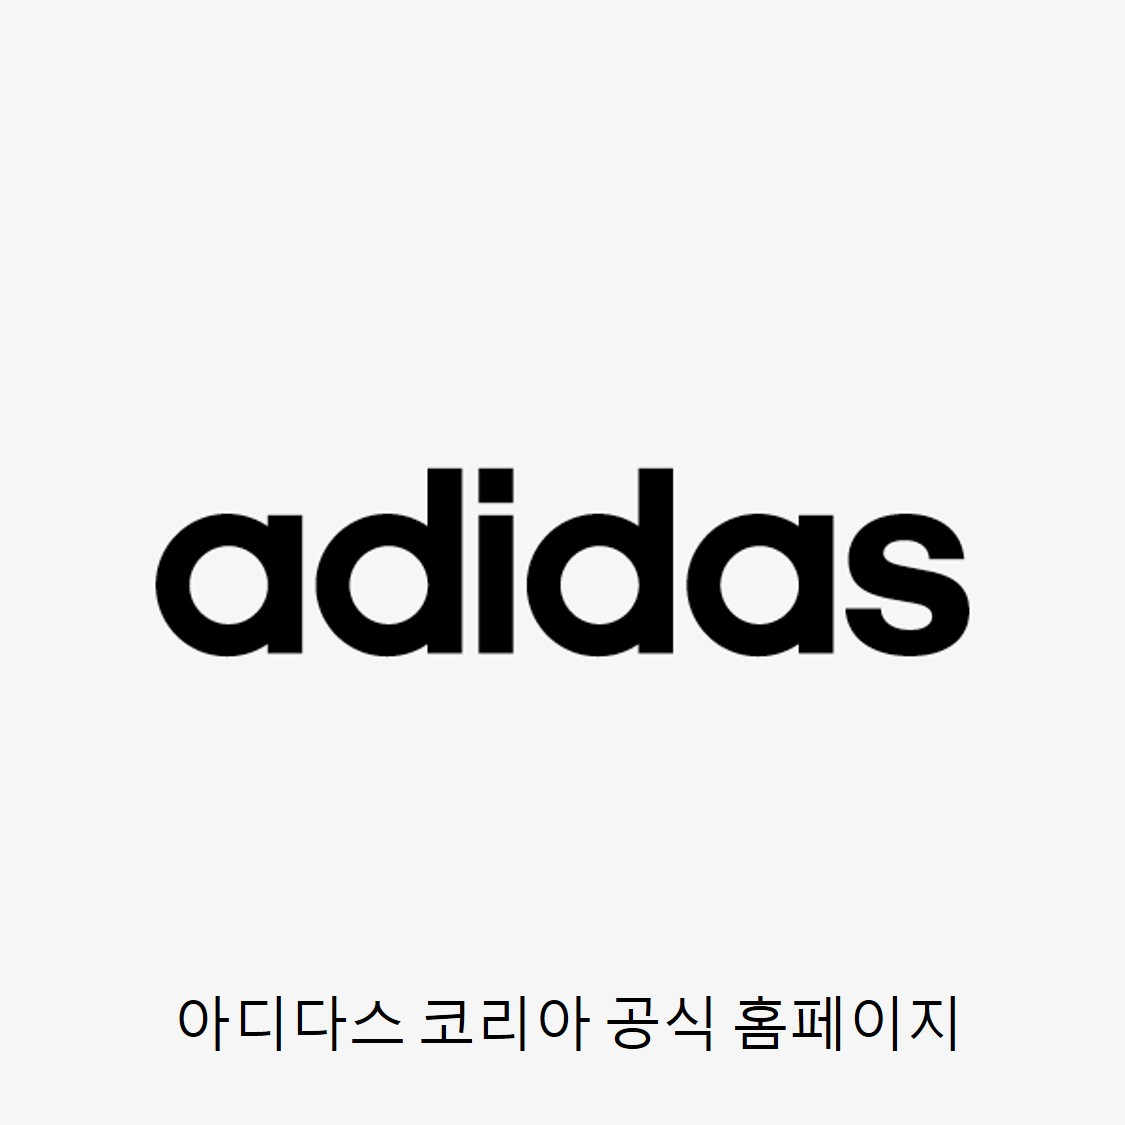 adidas korea official website